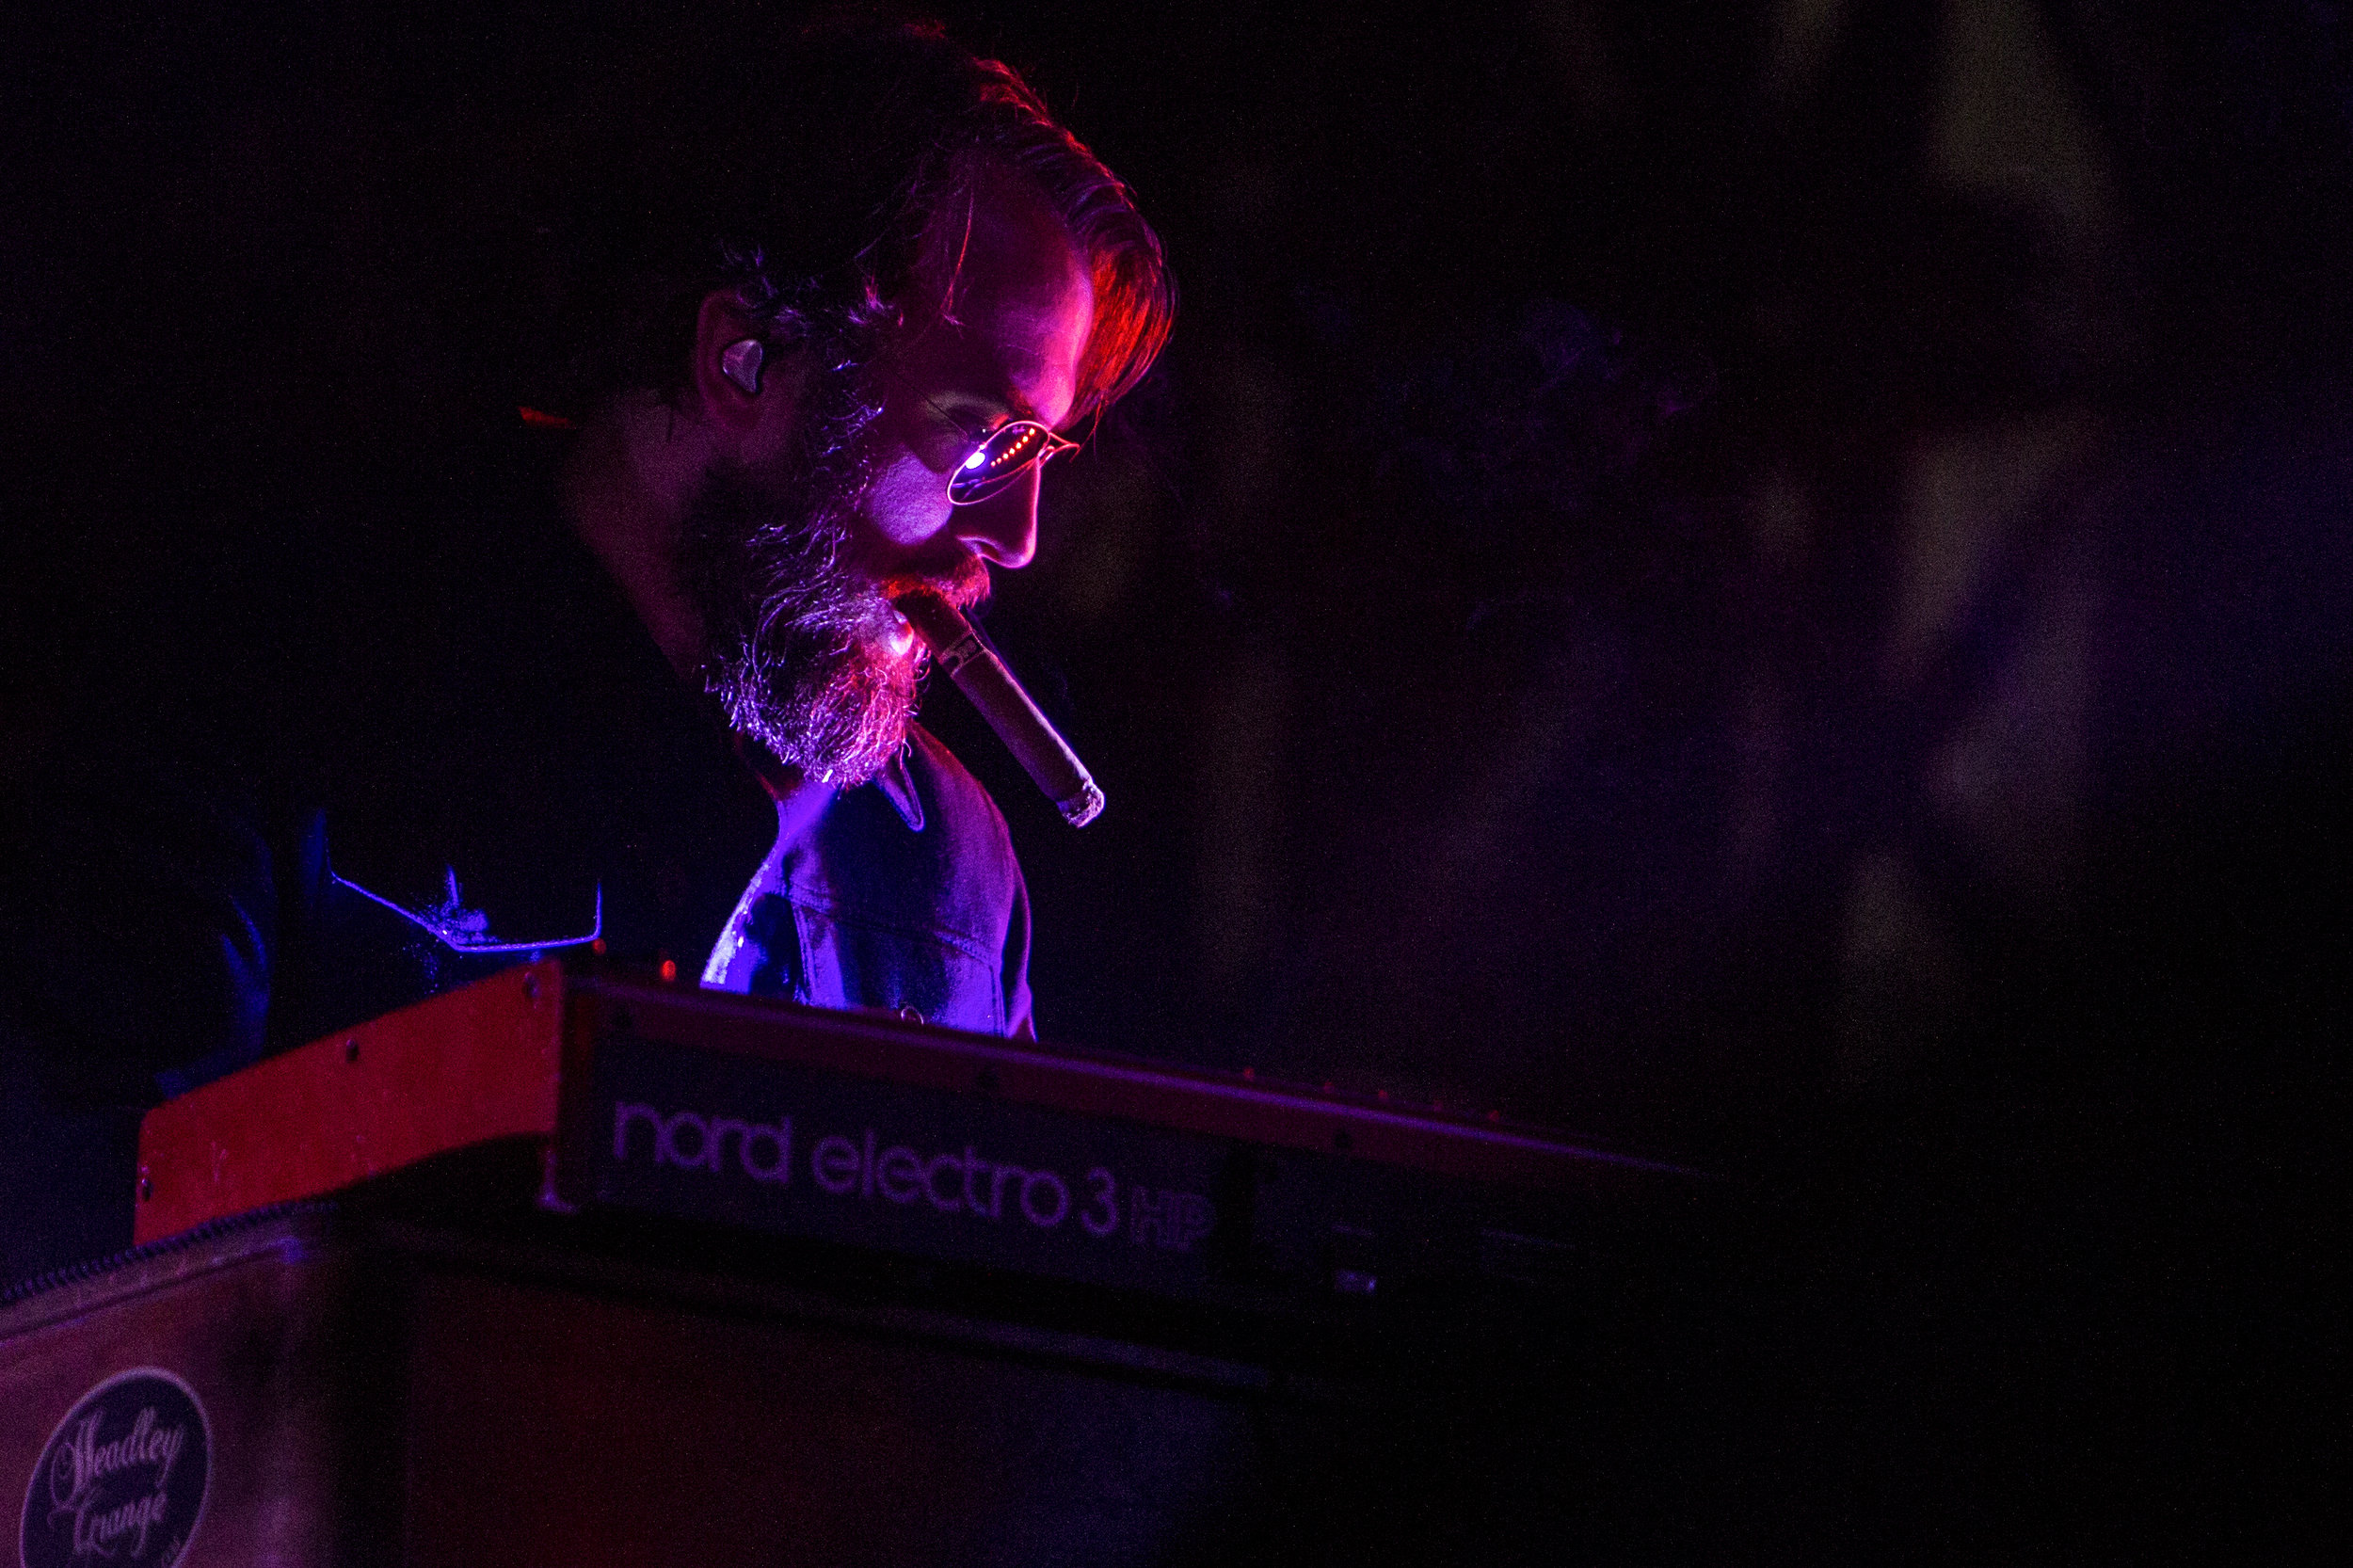 A keyboardist for Randy Houser performs during Country Thunder in Florence, Ariz.